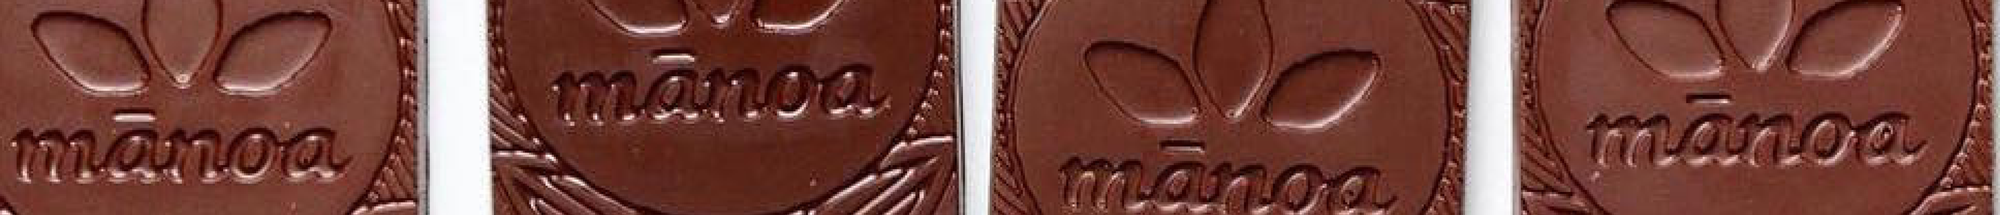 Mānoa Chocolate